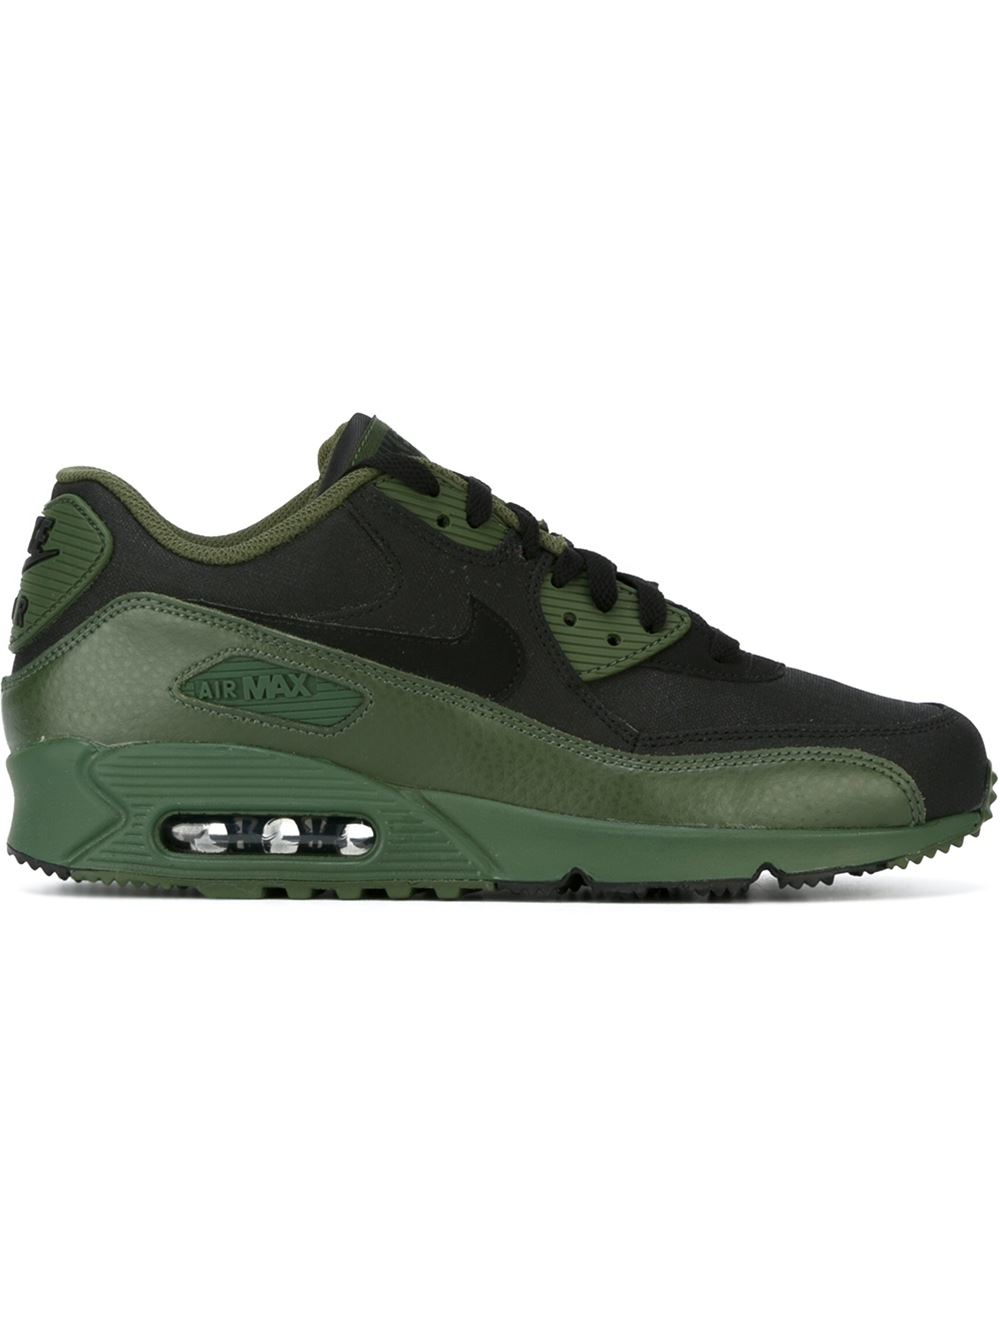 ba62c76eca39 where to buy nike air trainer sc winter lyst e1da6 711b2  ireland gallery.  previously sold at farfetch mens air max 90 sneakers ab91a 6e64c